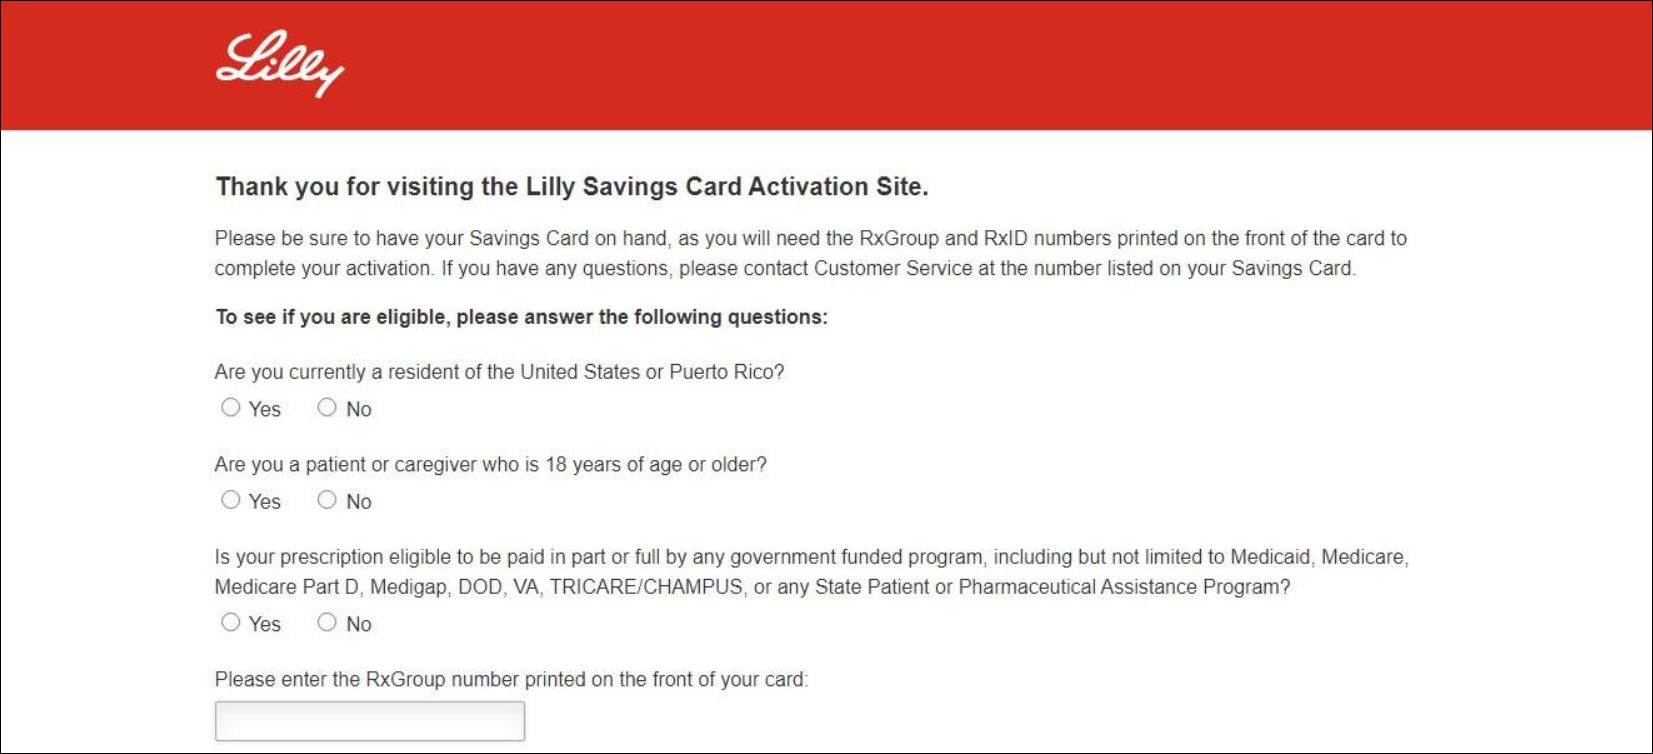 www.lillysavingscard.com Lilly Card Activation